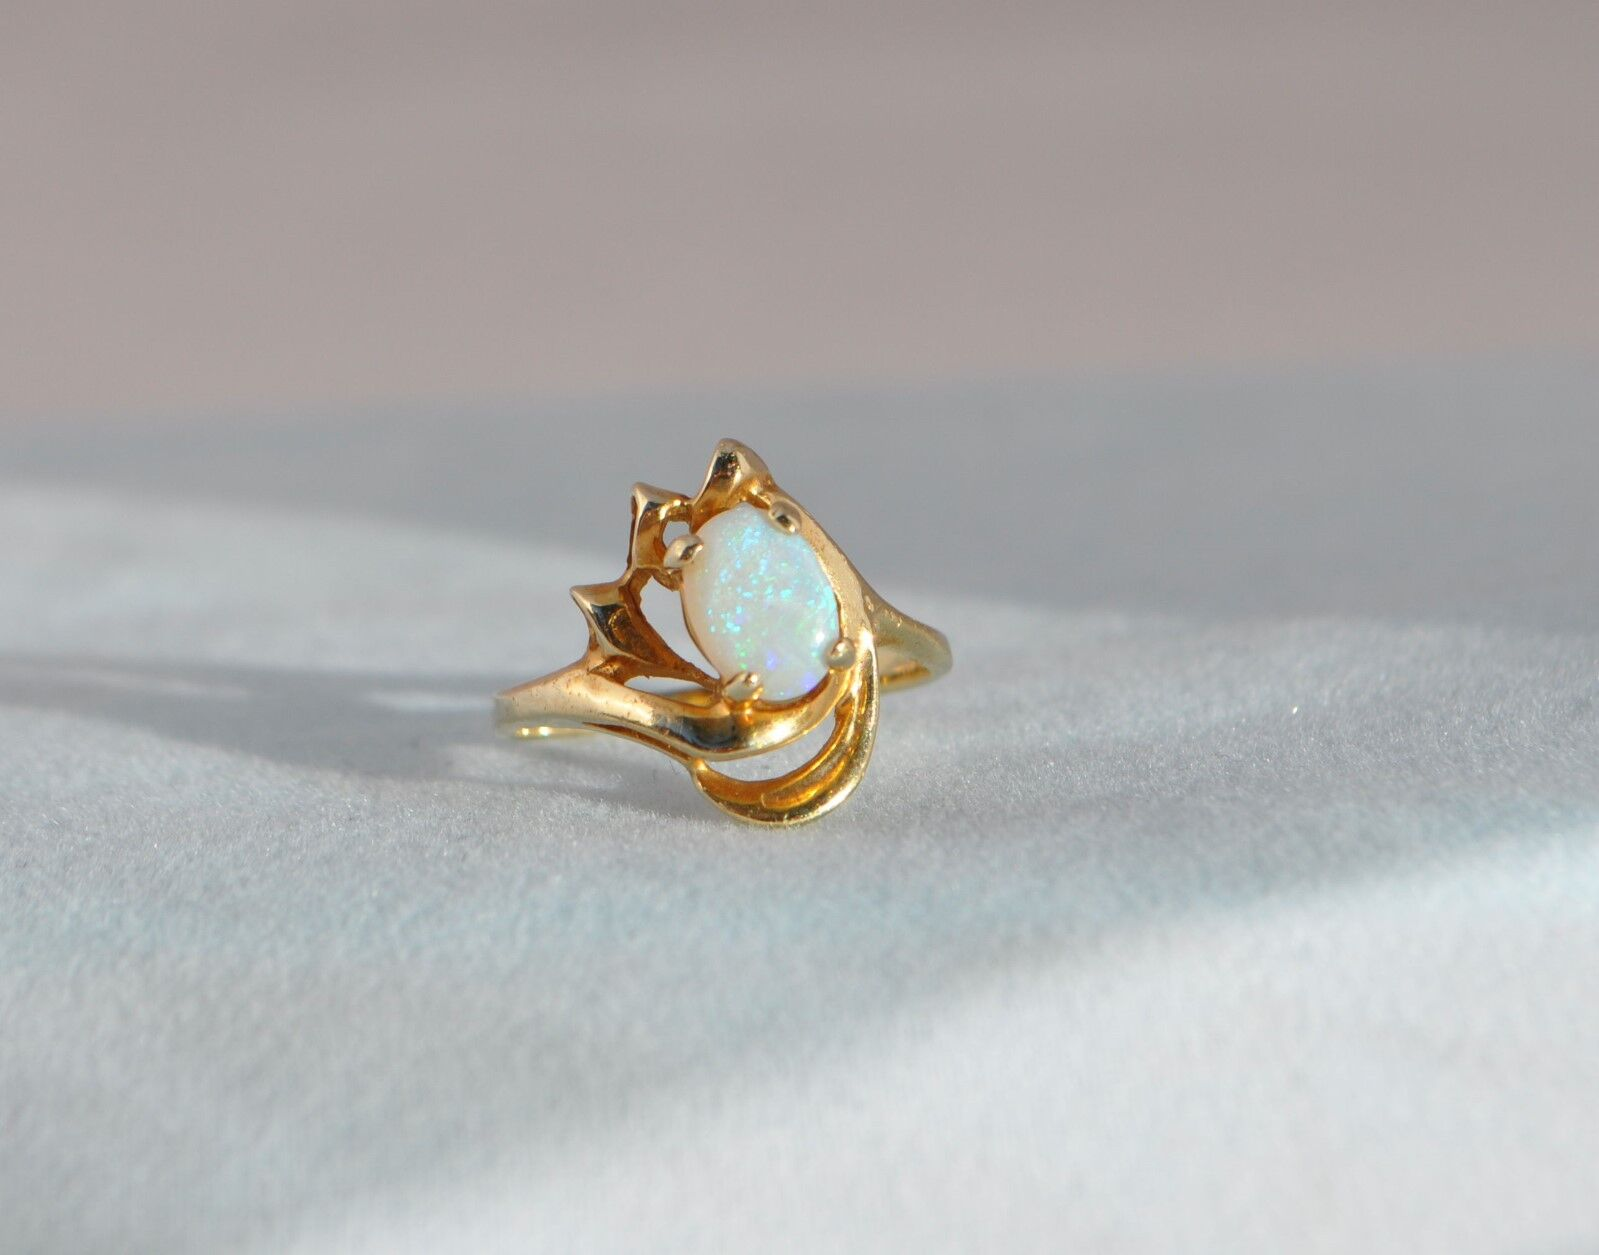 VINTAGE 14K SOLID YELLOW gold NATURAL OPAL RING - OVAL